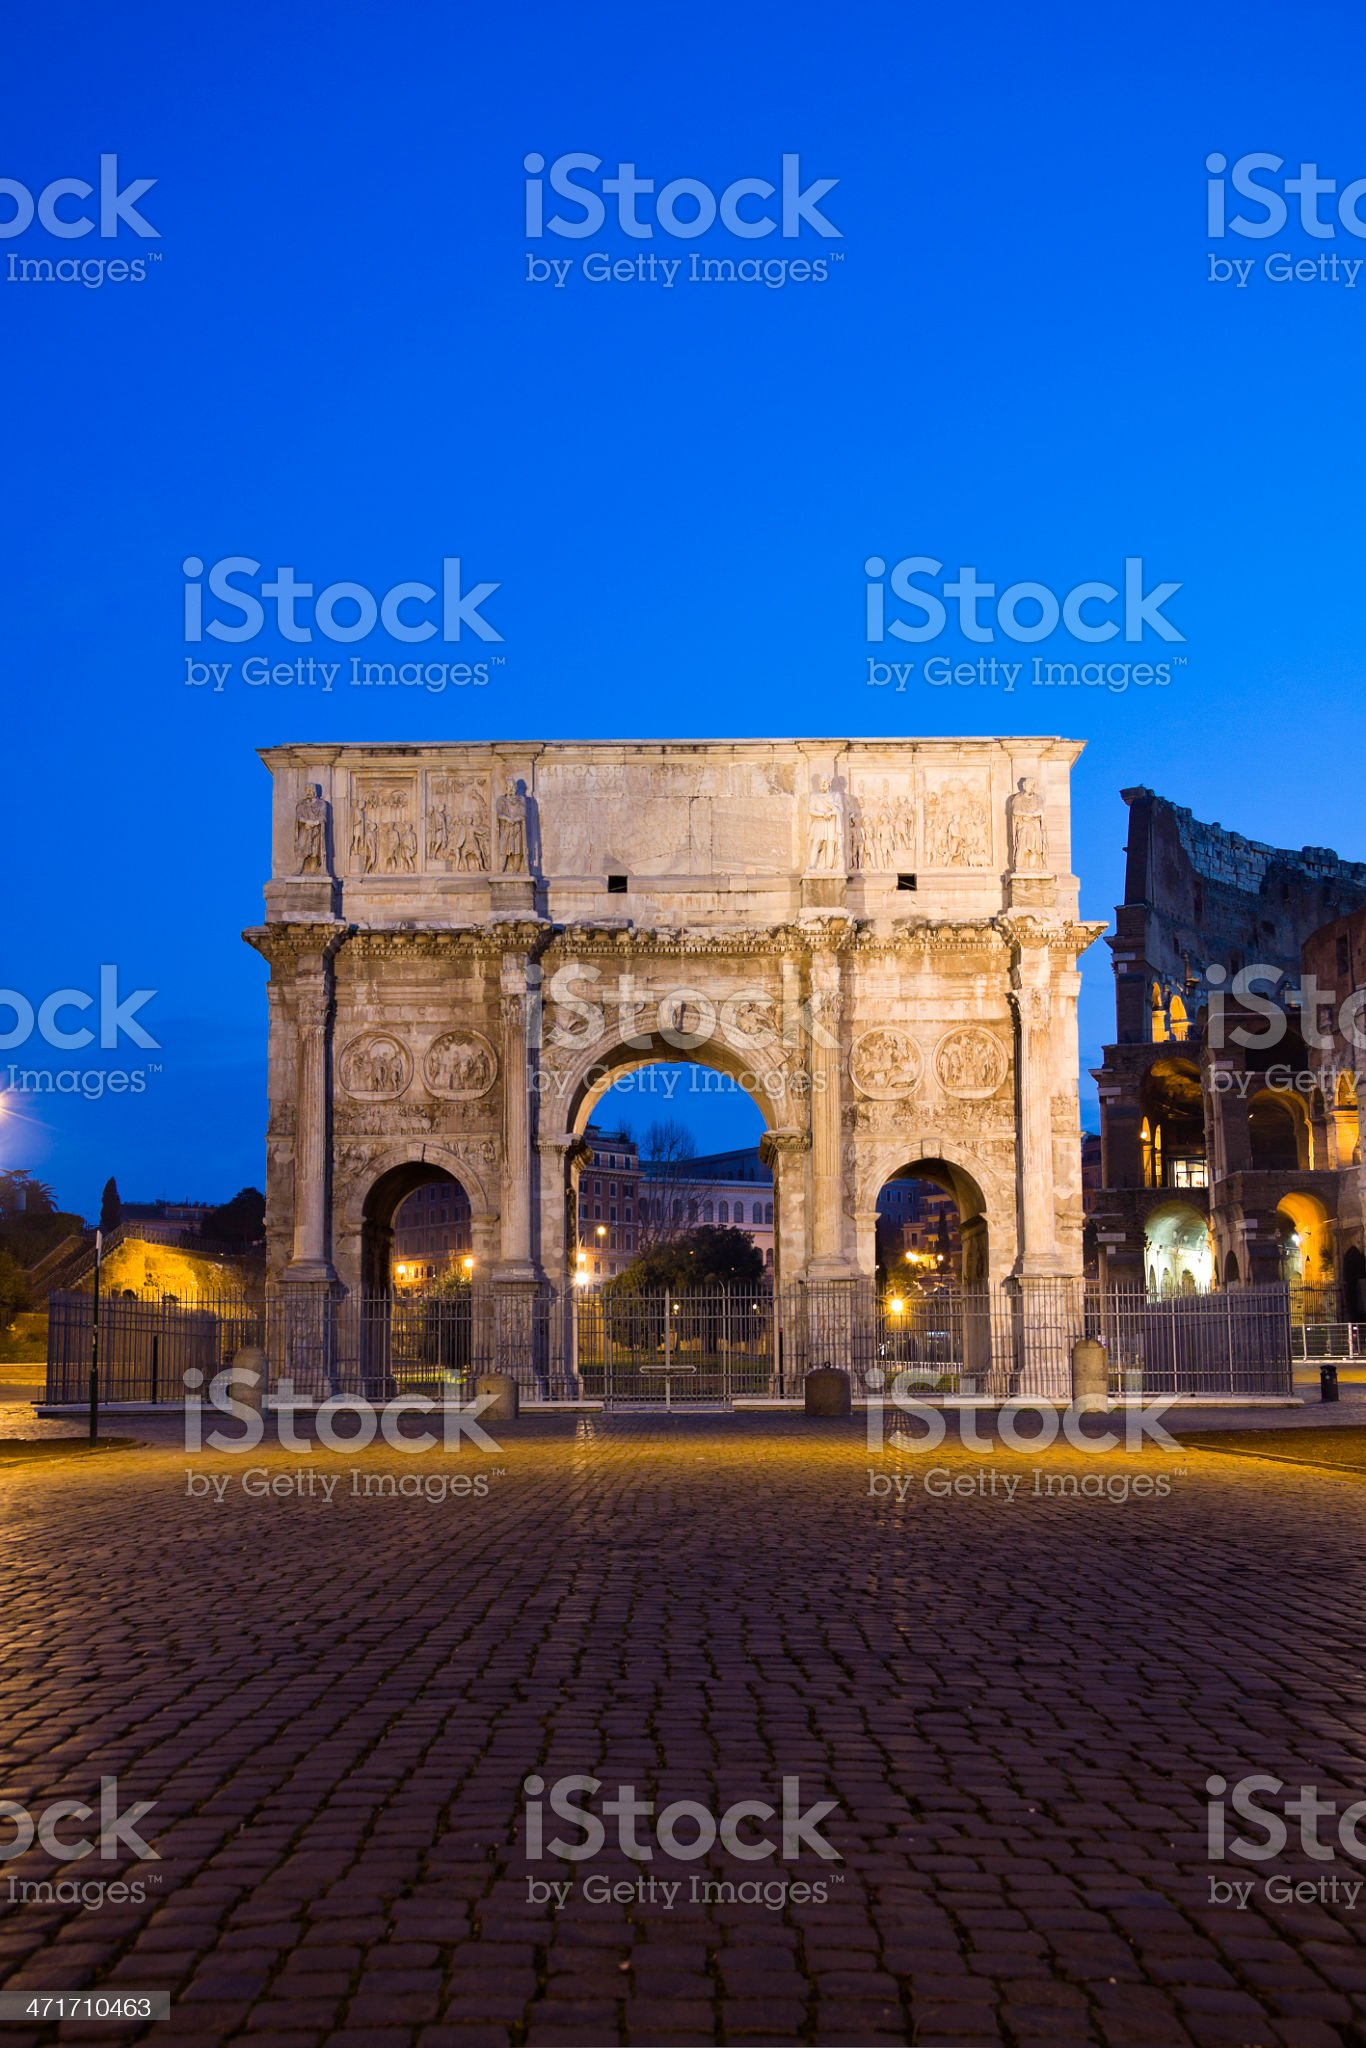 Costantine arch near Colosseum, Rome, Italy royalty-free stock photo